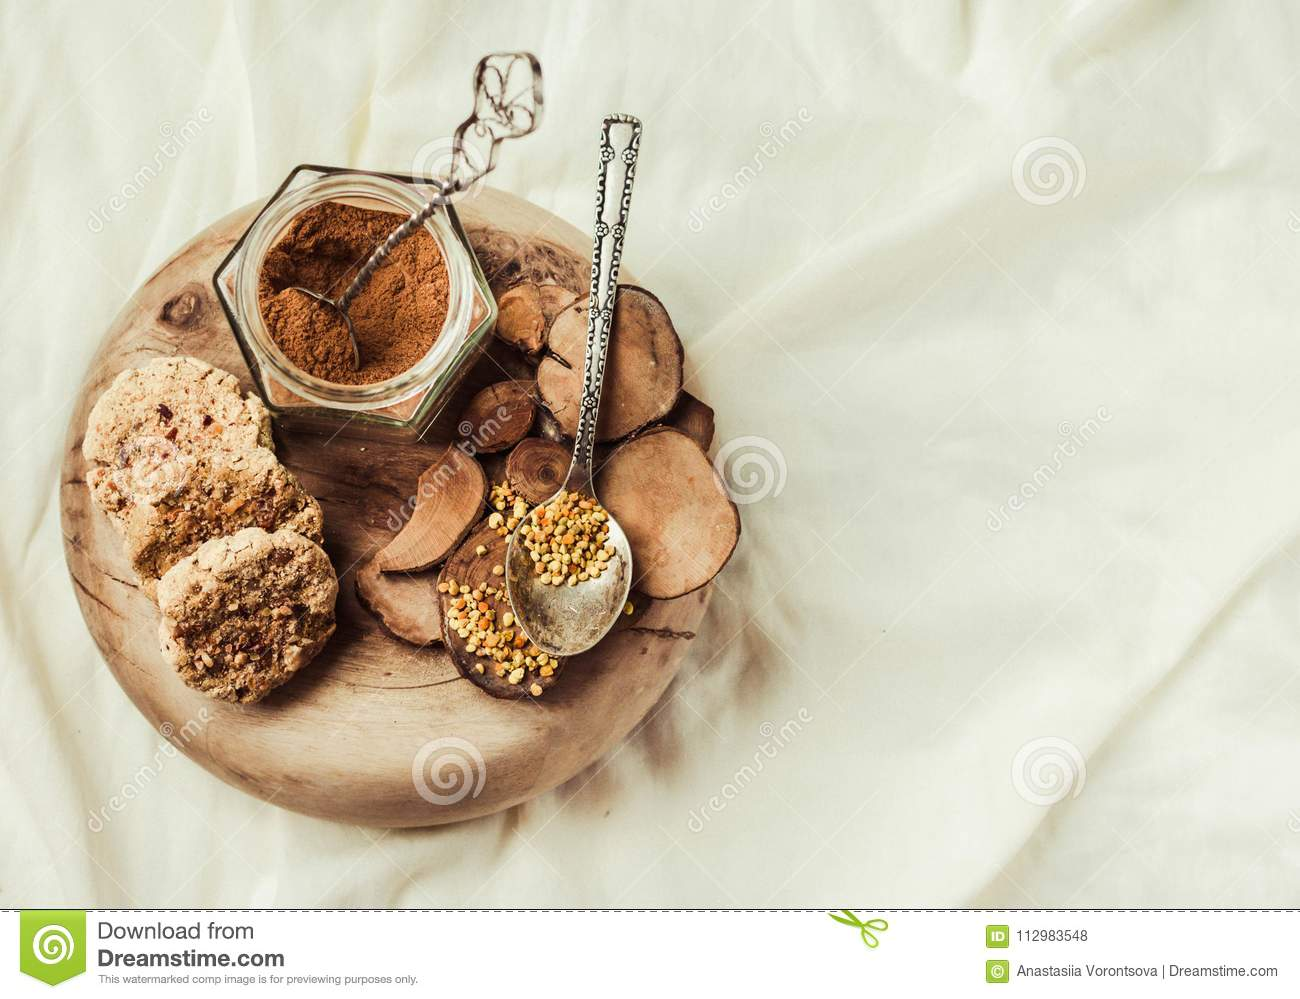 bee pollen in a jar on a wooden stand, Ceylon cinnamon and biscuits, white linen tablecloth background.Copy space.Top view.